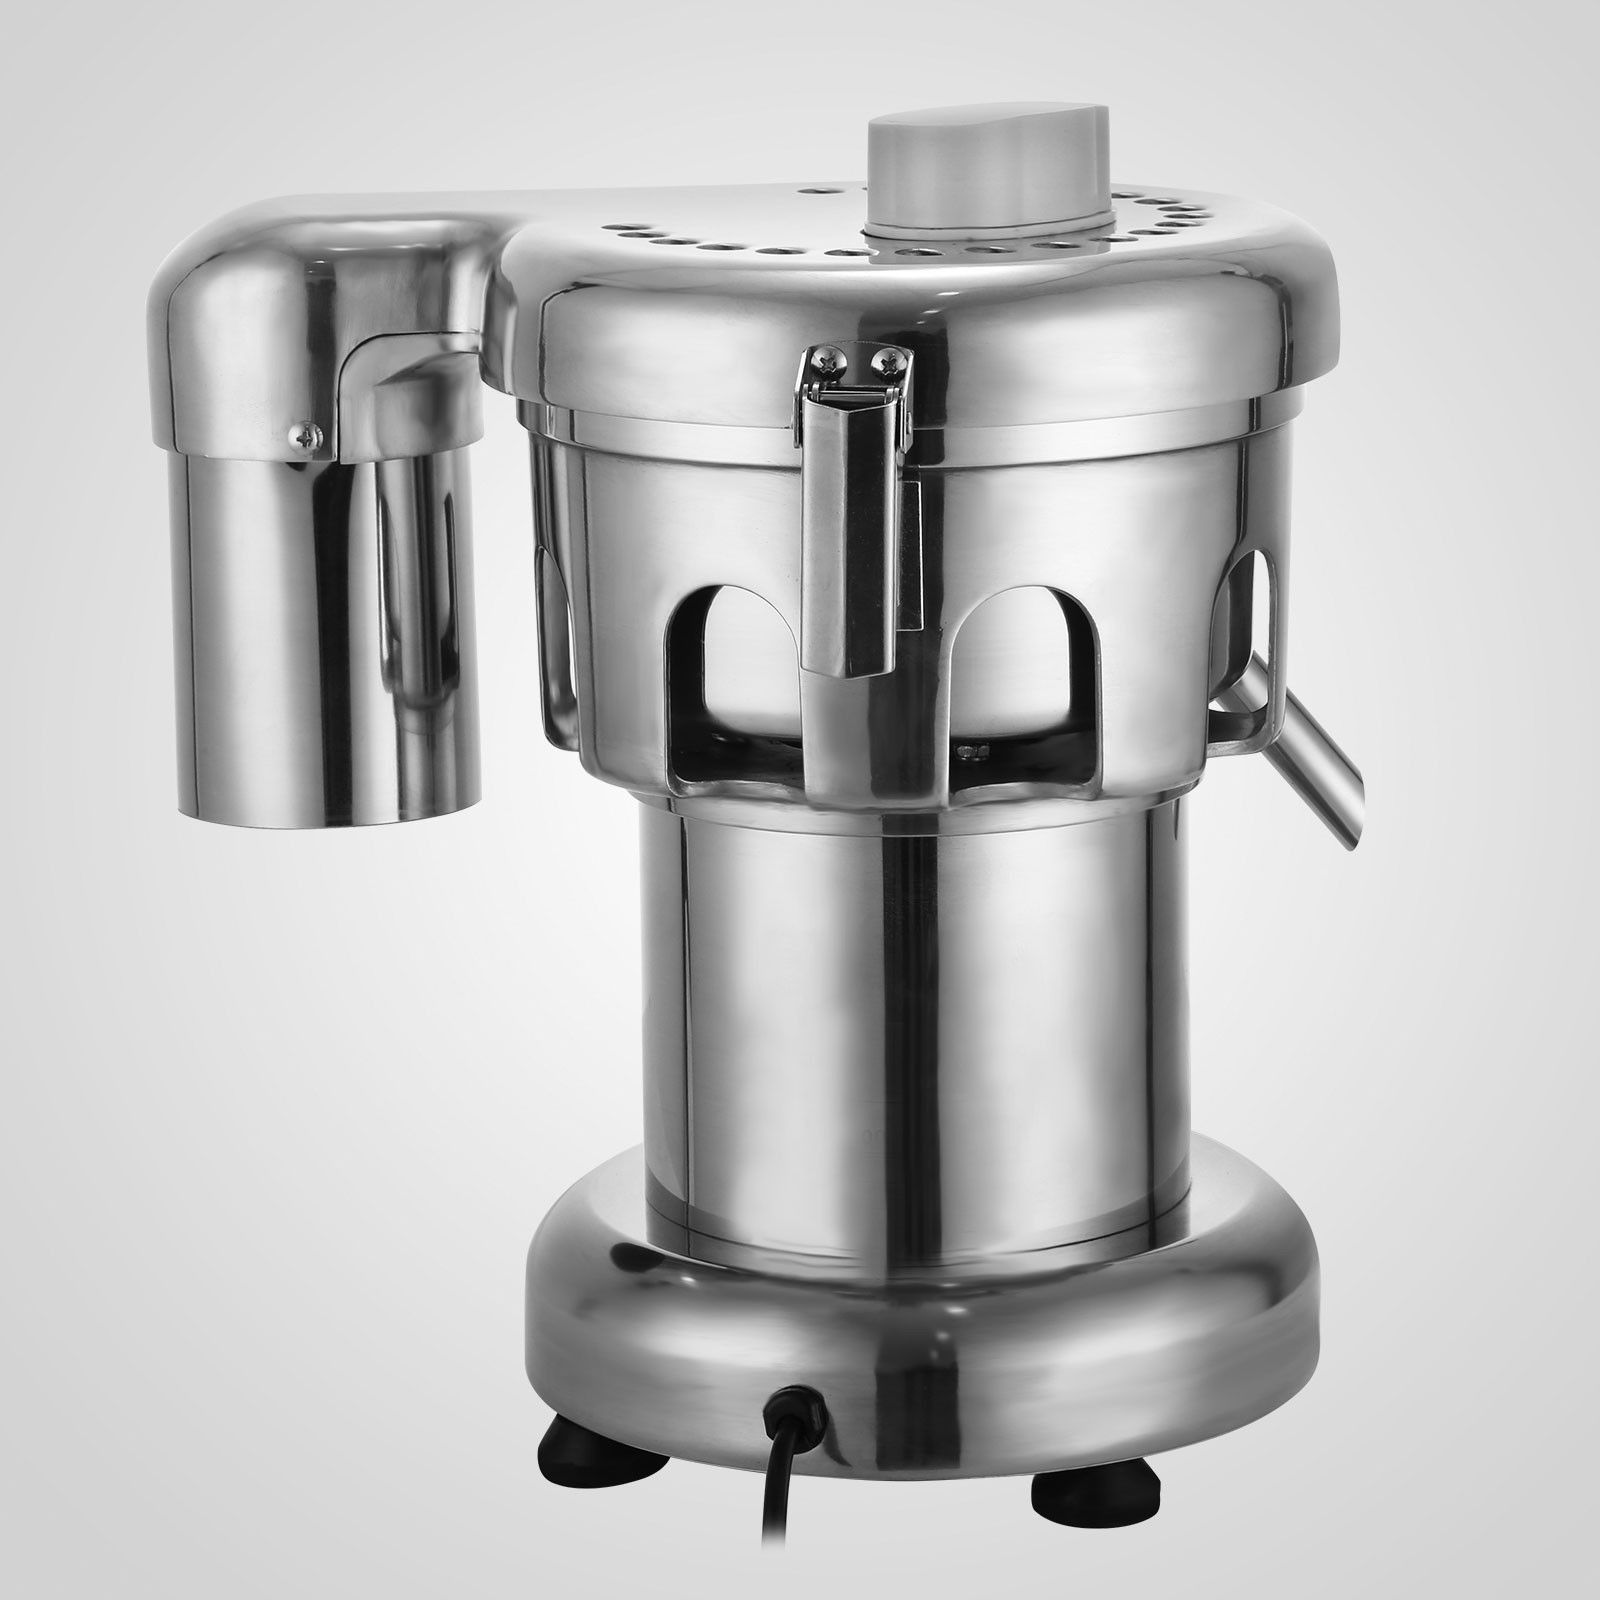 Stainless Steel Juicer ~ Rpm commercial juice extractor stainless steel juicer